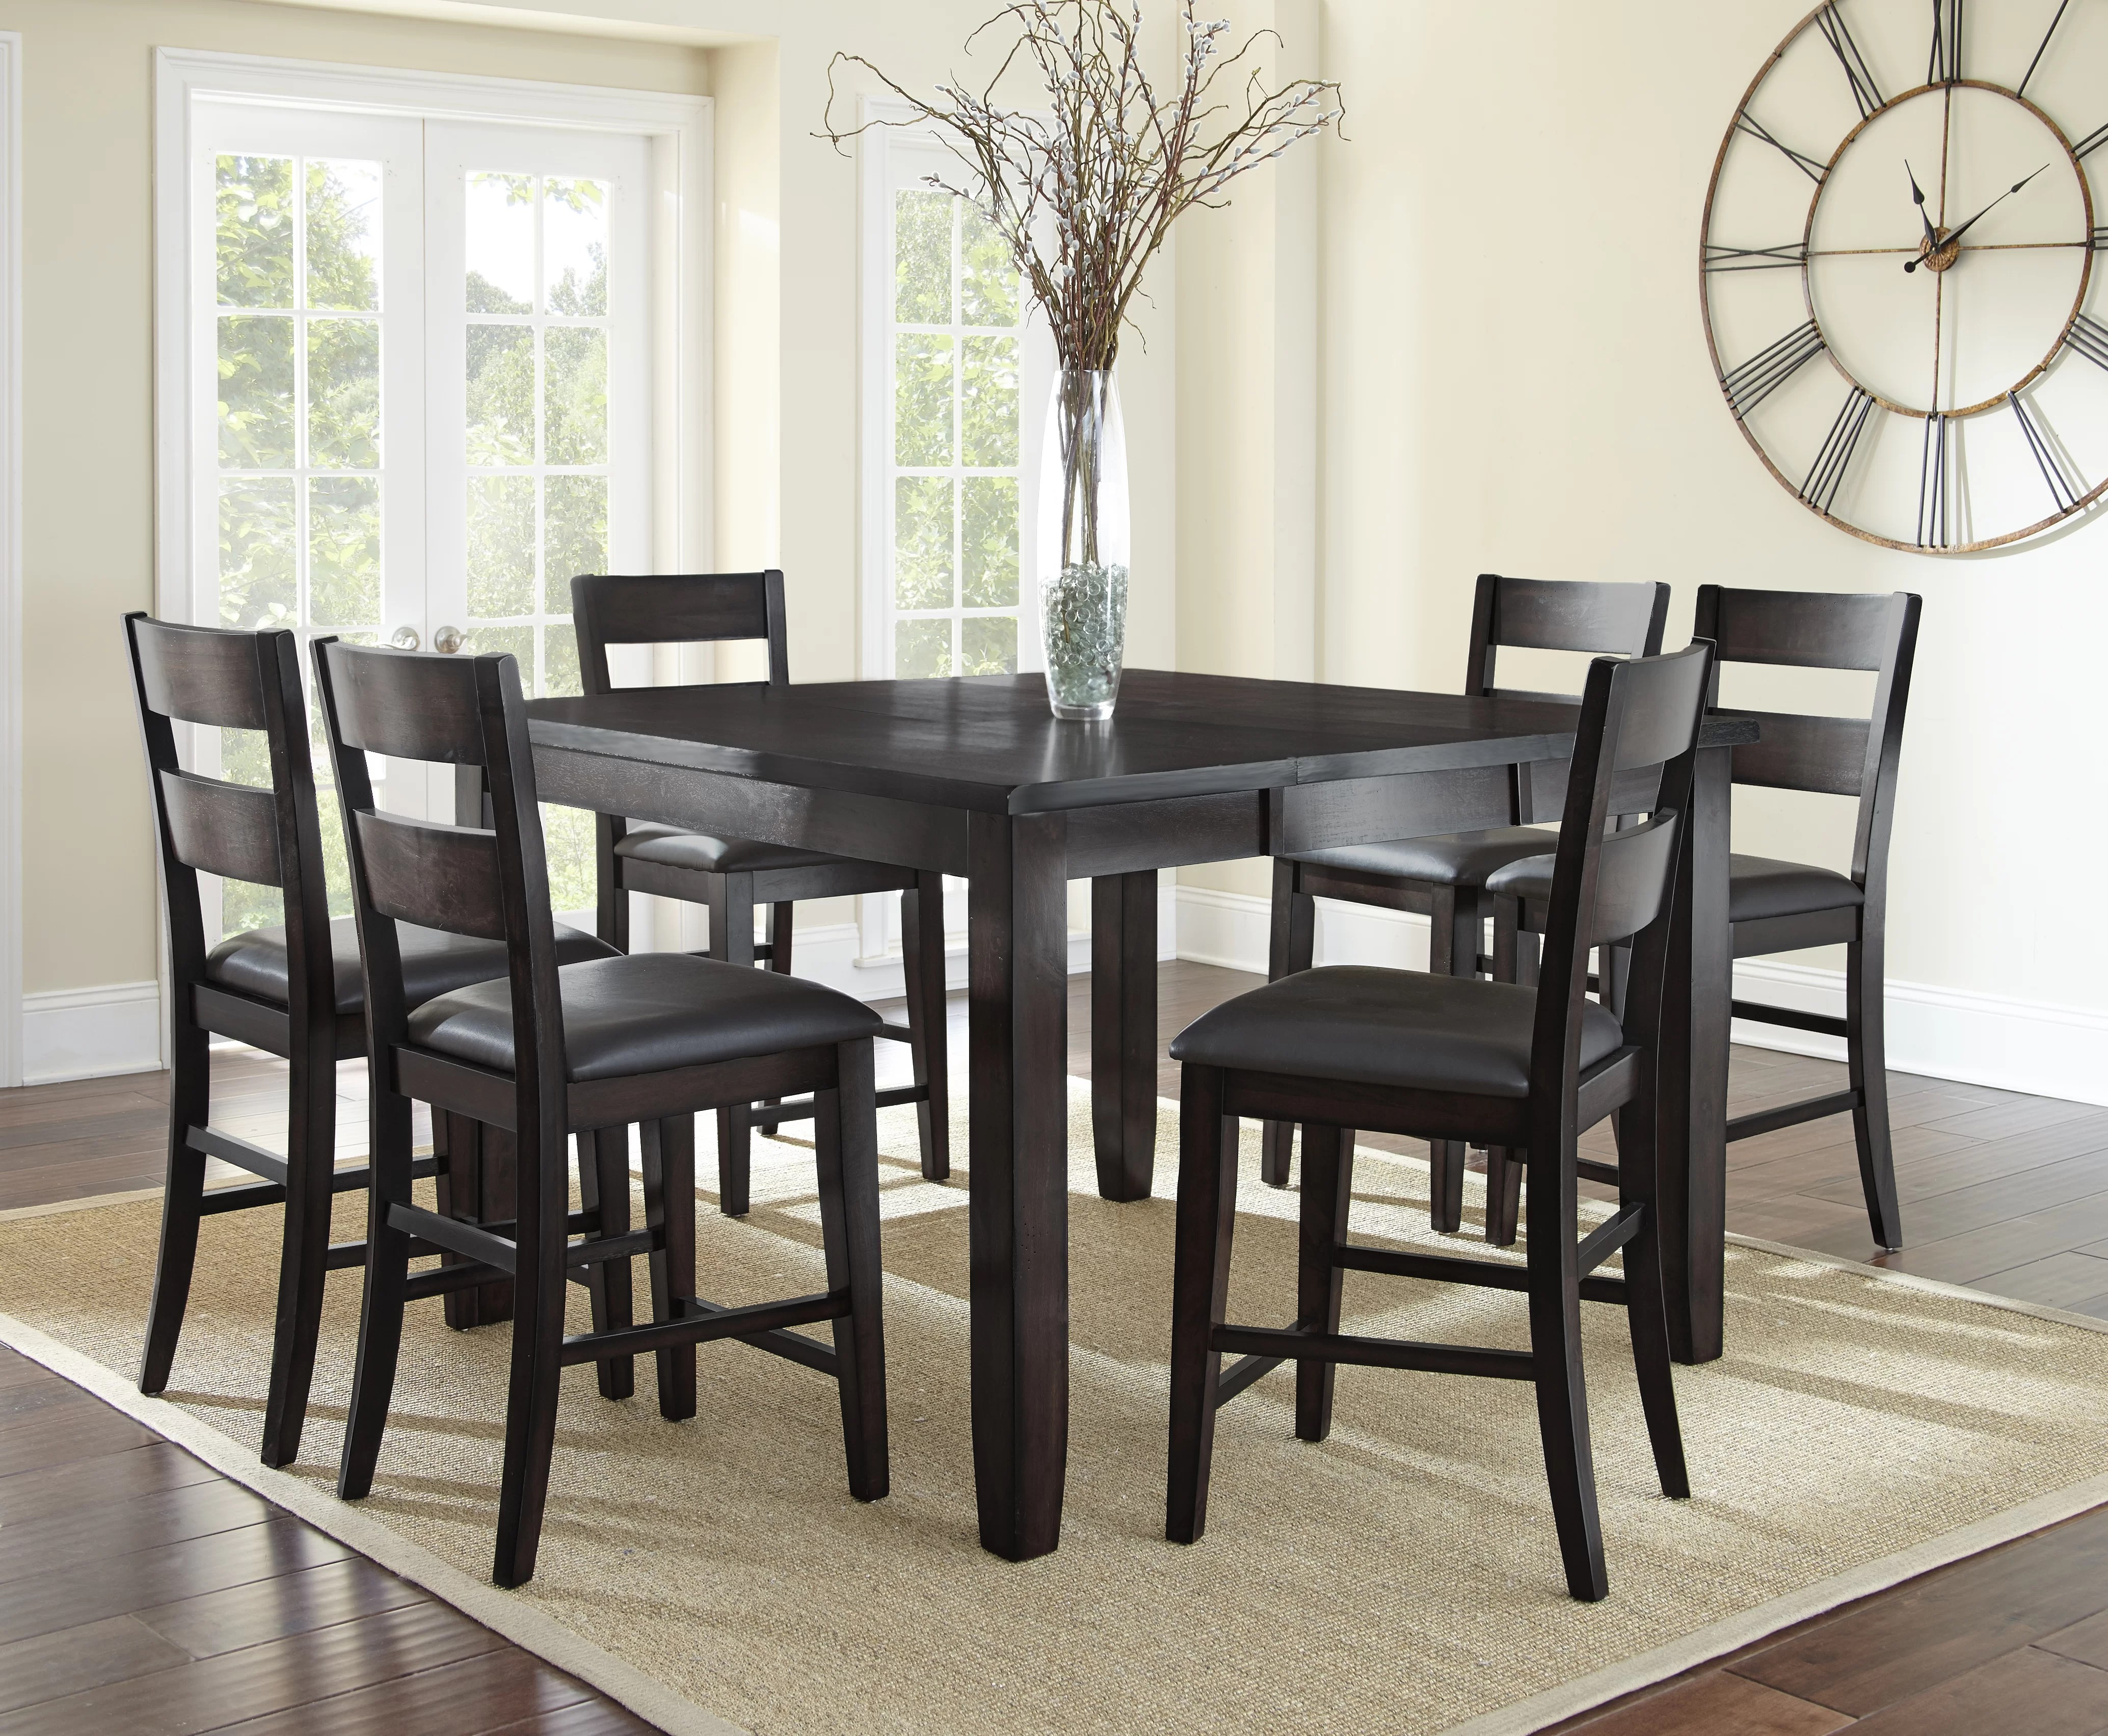 Alcott Hill Wynwood 7 Piece Counter Height Solid Wood Dining Set Reviews Wayfair